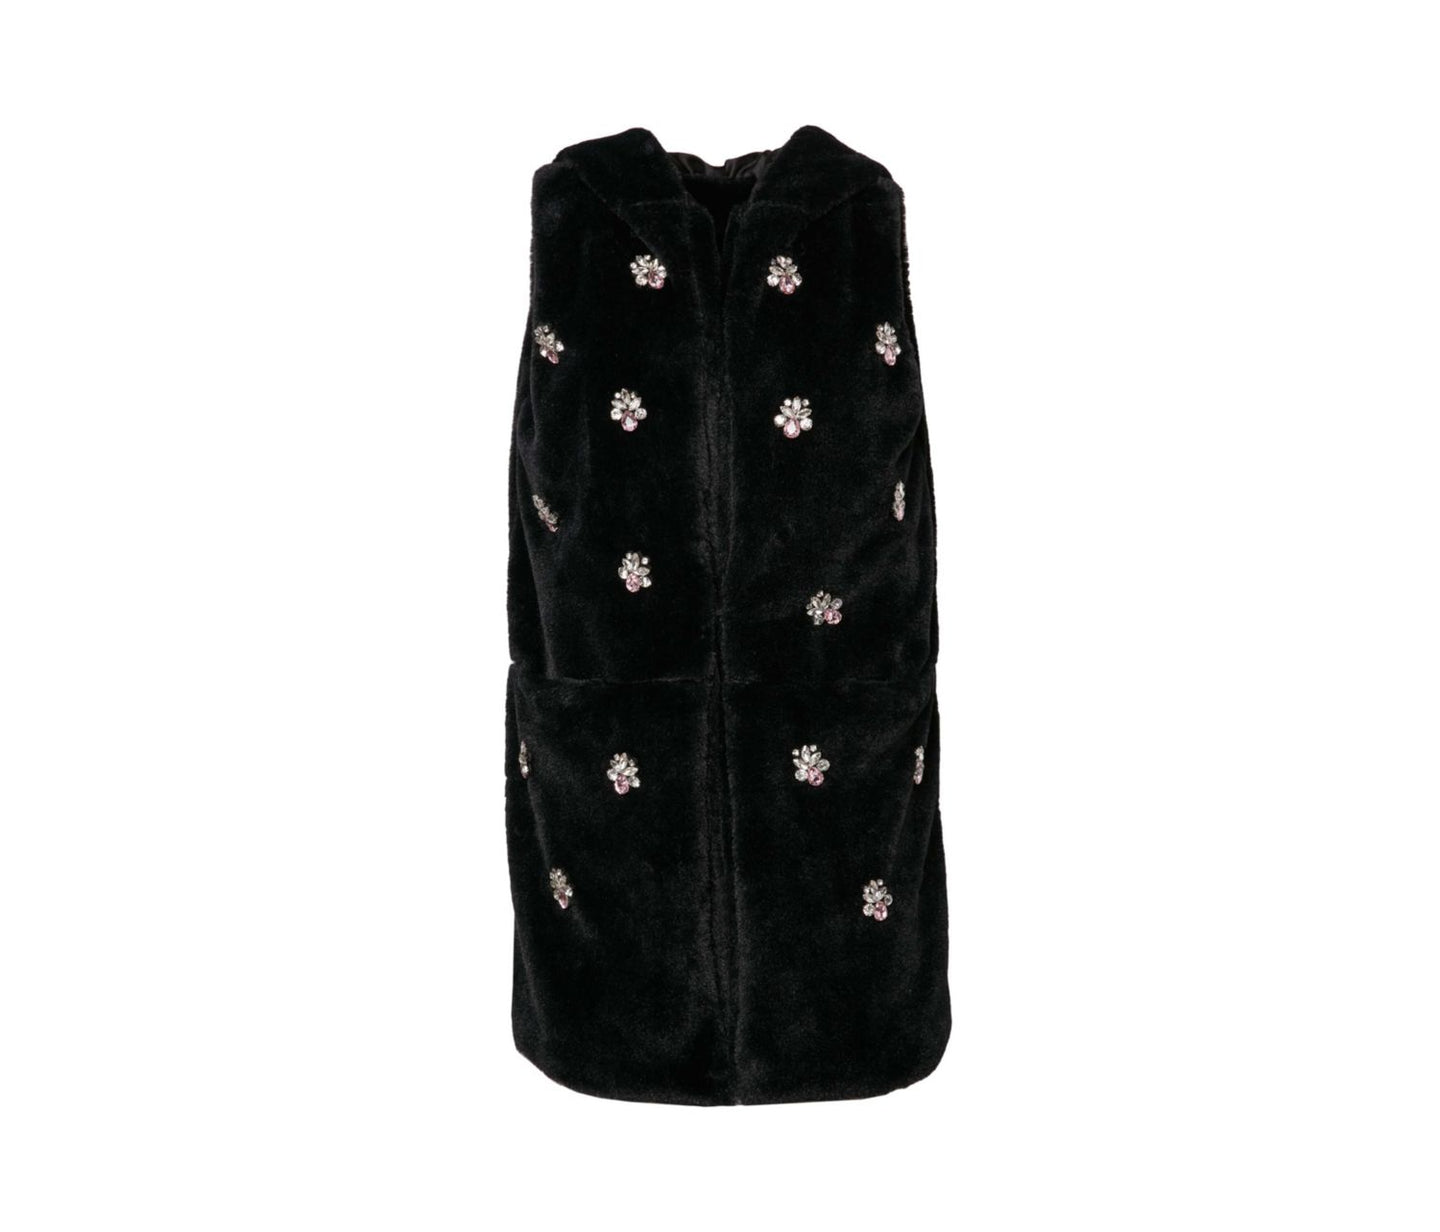 CRYSTAL CLEAR HOODED VEST BLACK - APPAREL - Betsey Johnson